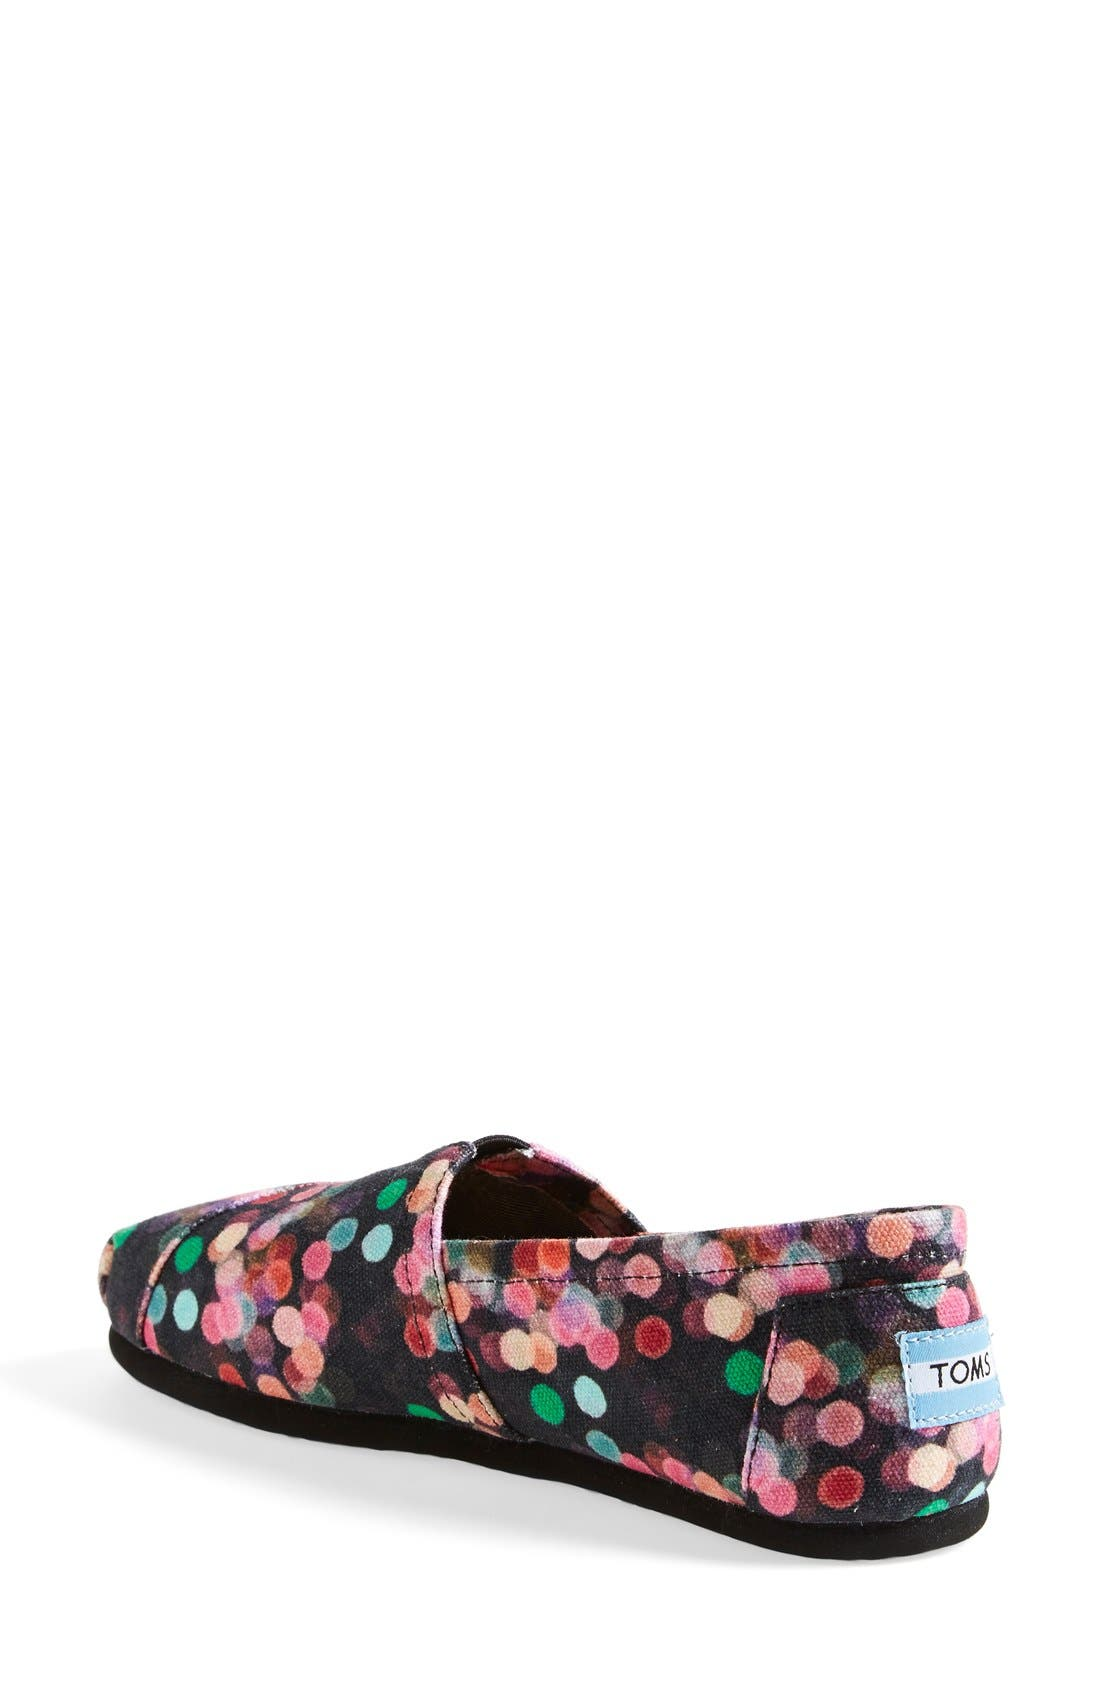 Alternate Image 2  - TOMS 'Classic - Night Lights' Slip-On (Nordstrom Exclusive) (Women)